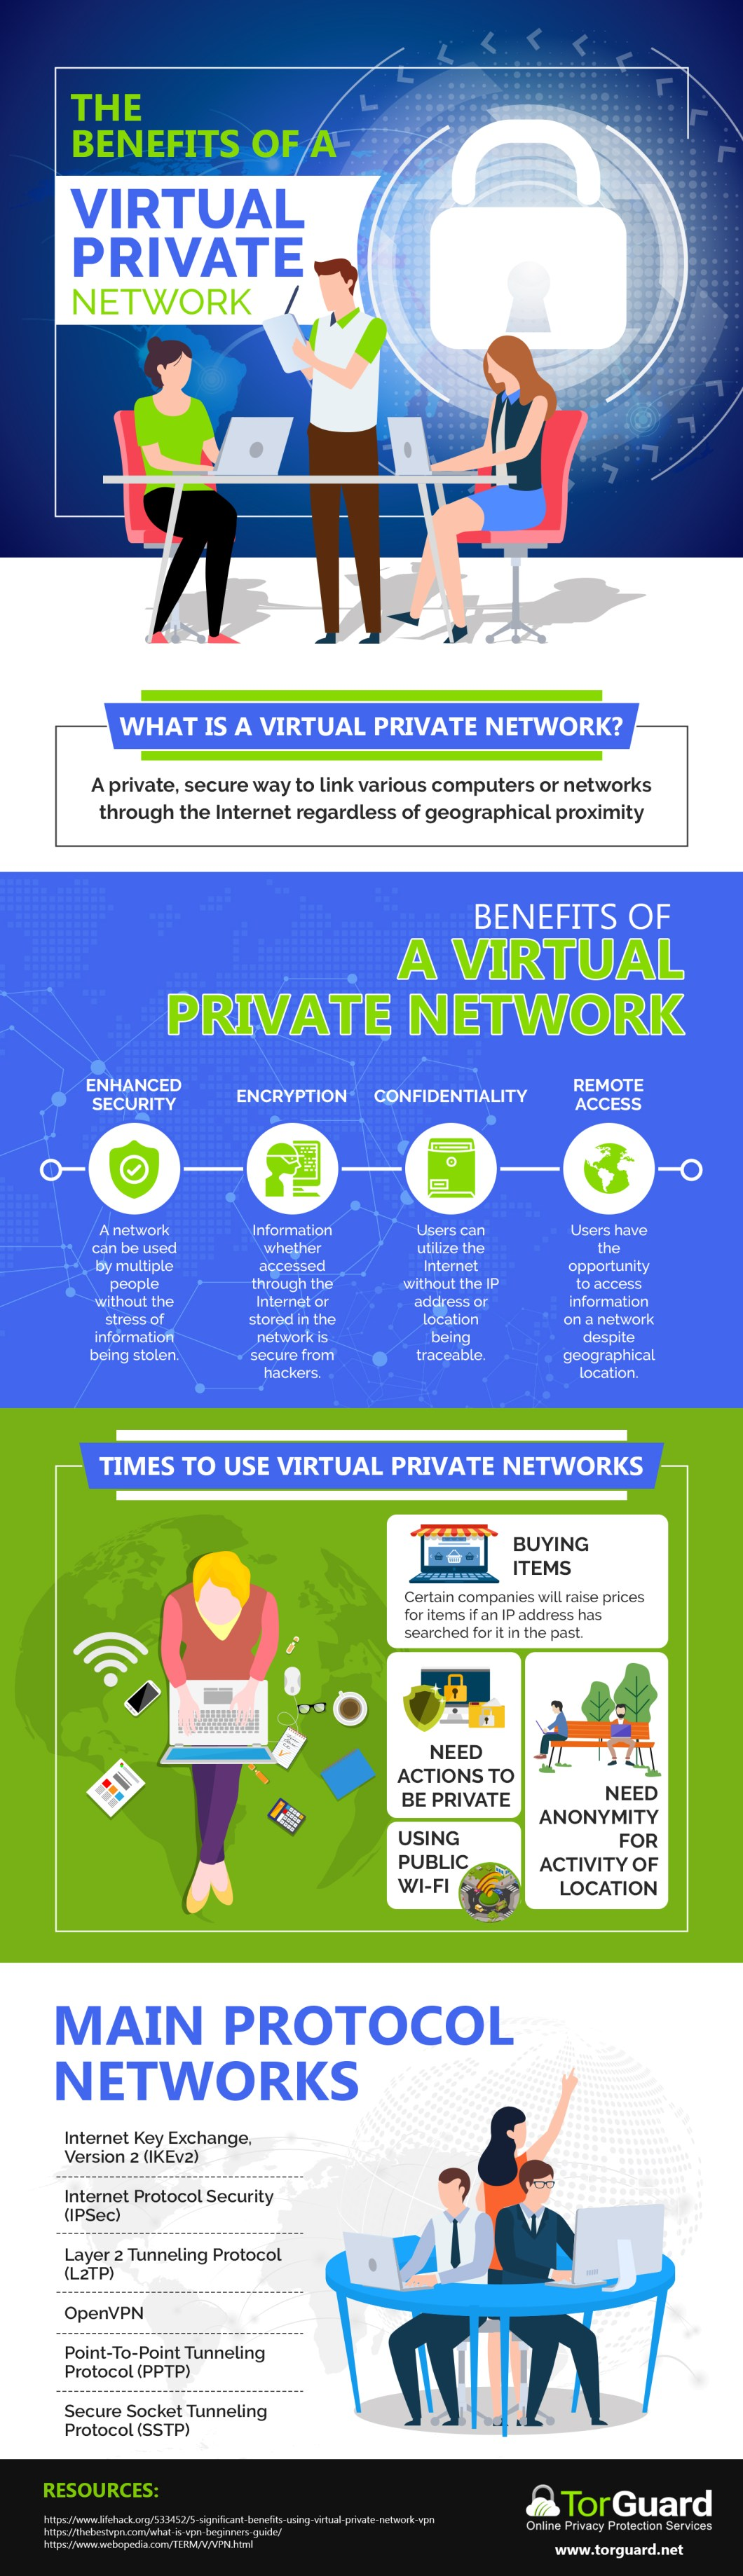 Why Using a Virtual Private Network Makes Perfect Sense - Infographic